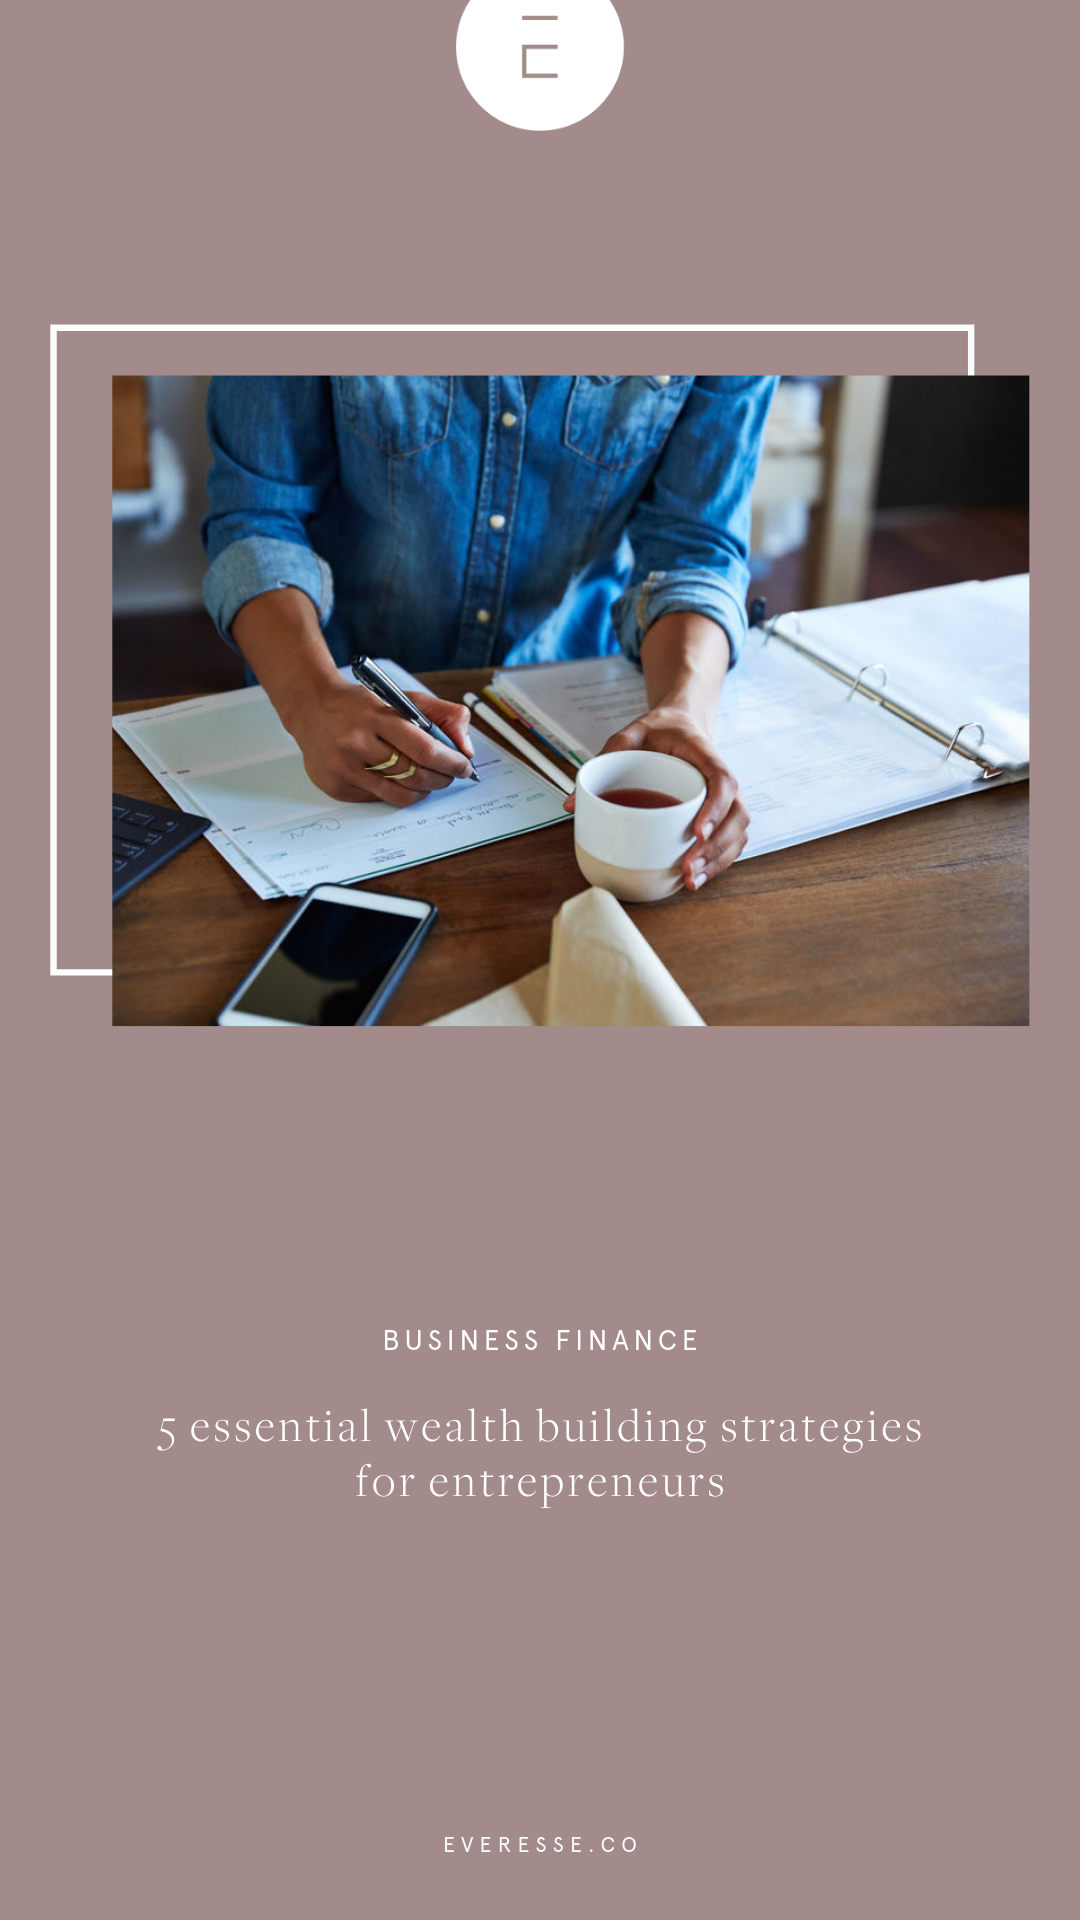 5 essential wealth building strategies for entrepreneurs 2.png